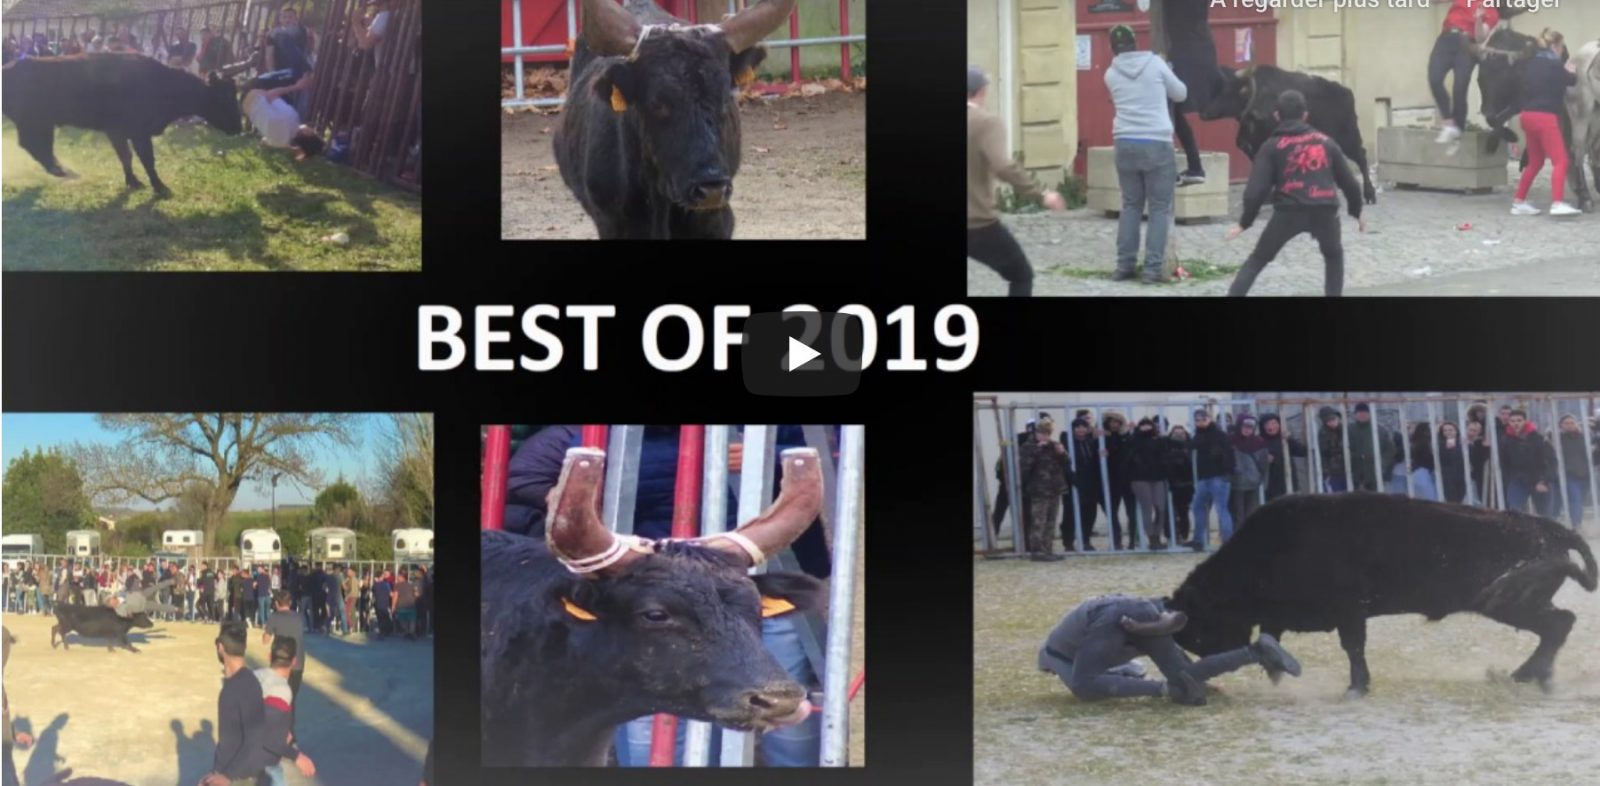 VIDEO // BEST OF 2019